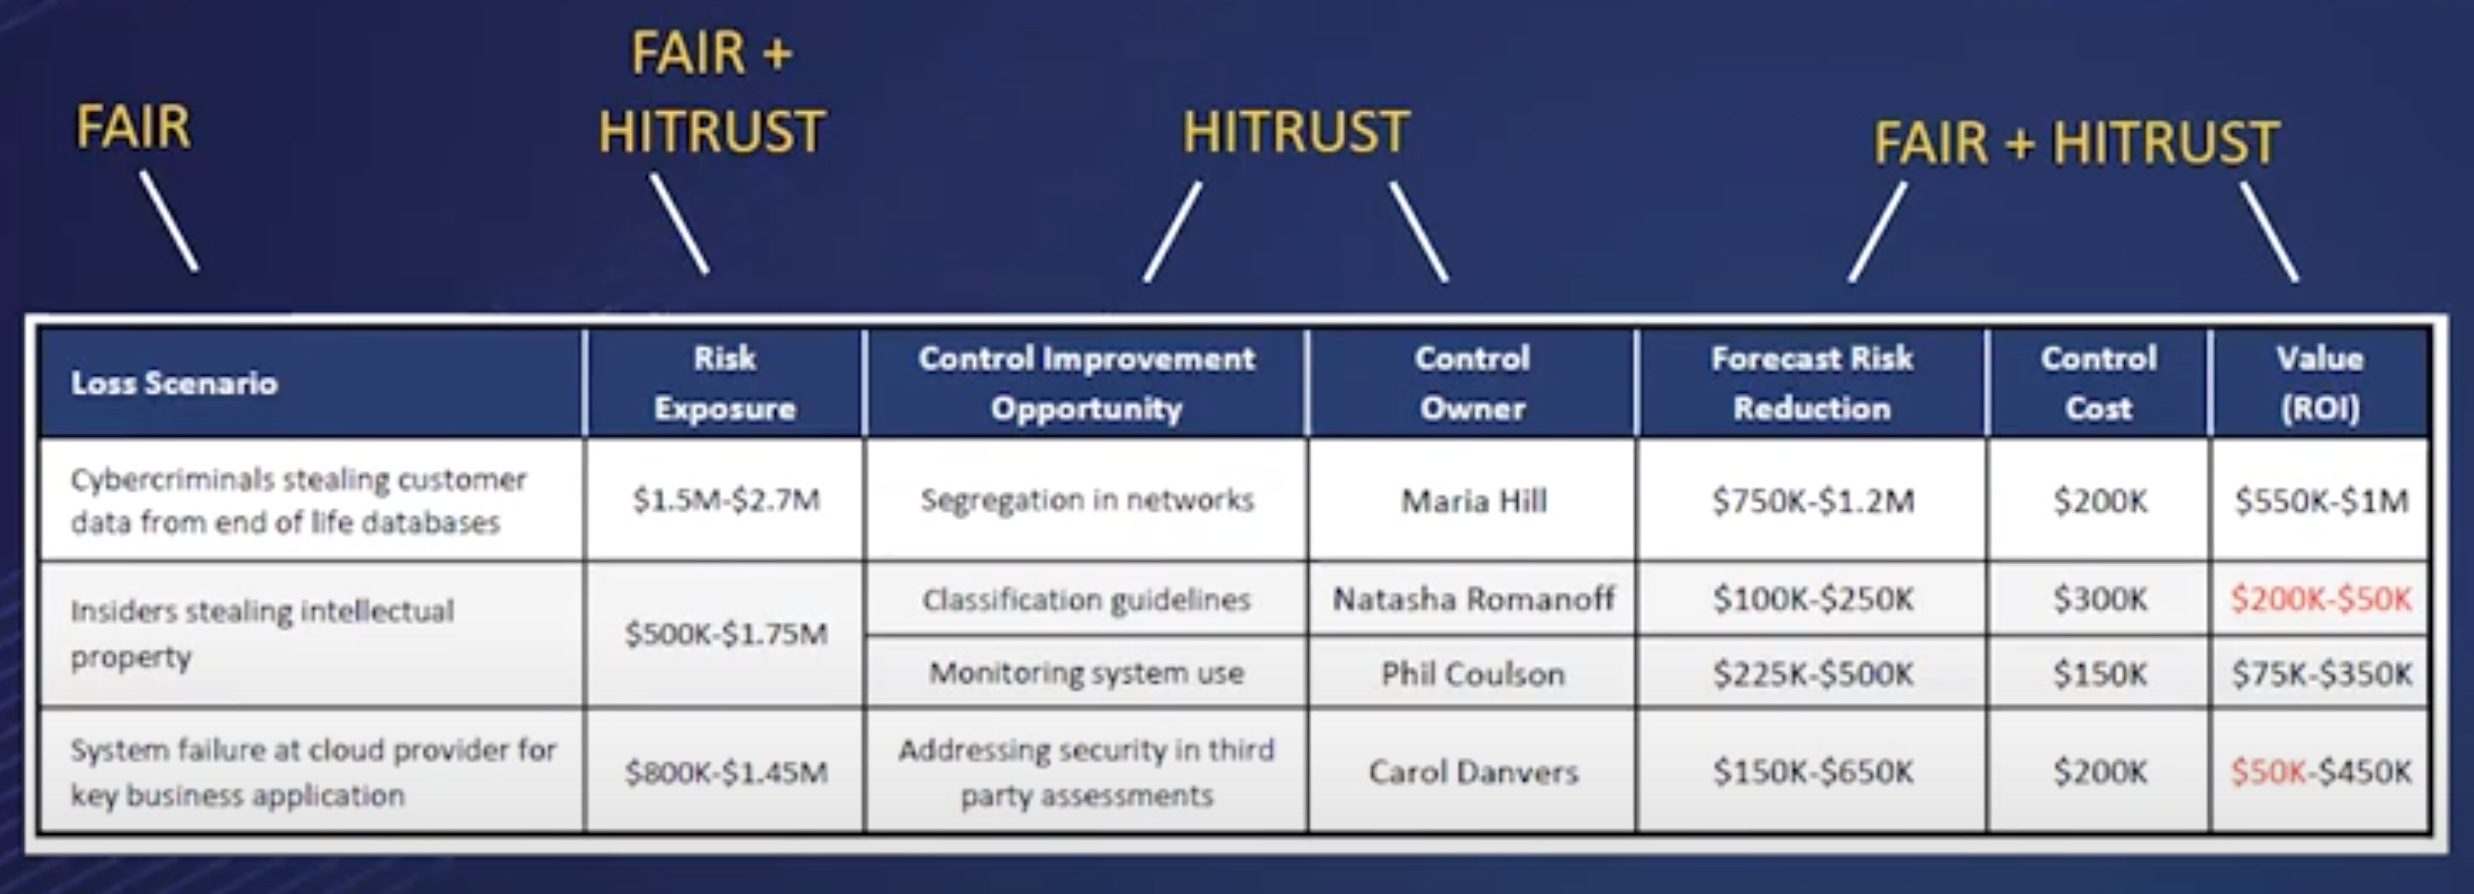 FAIR HITRUST Integration Chart 2